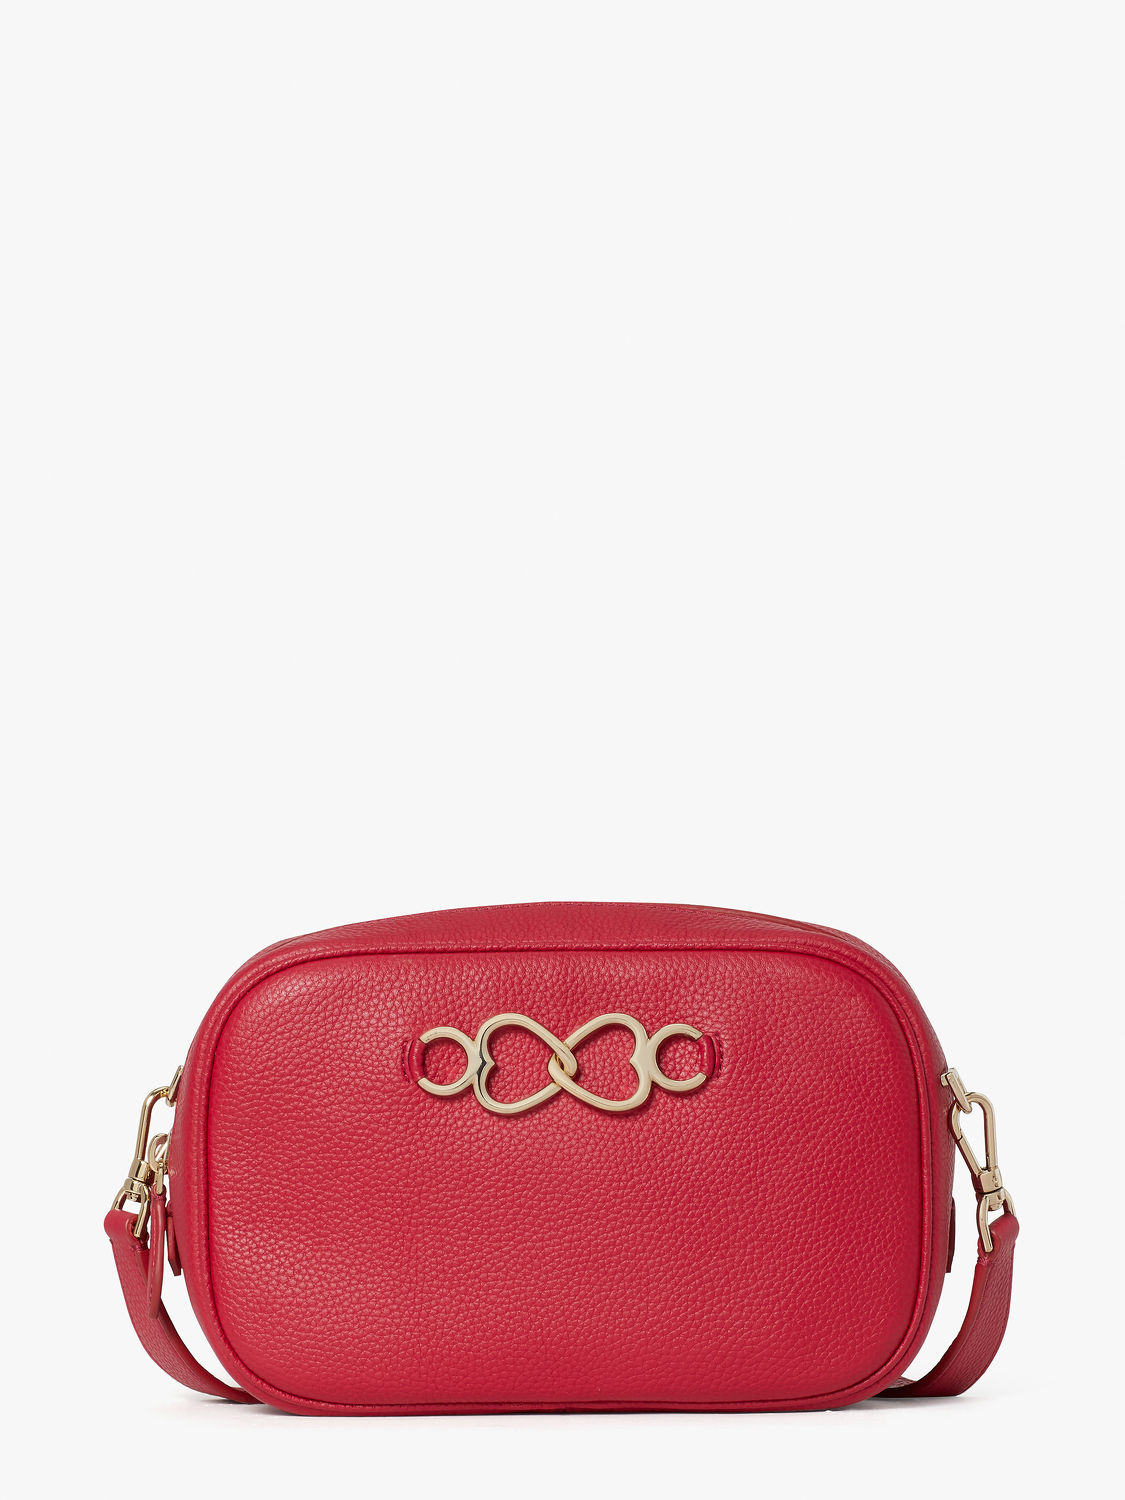 camer bag In pomegranate - THE EDGE SINGAPORE